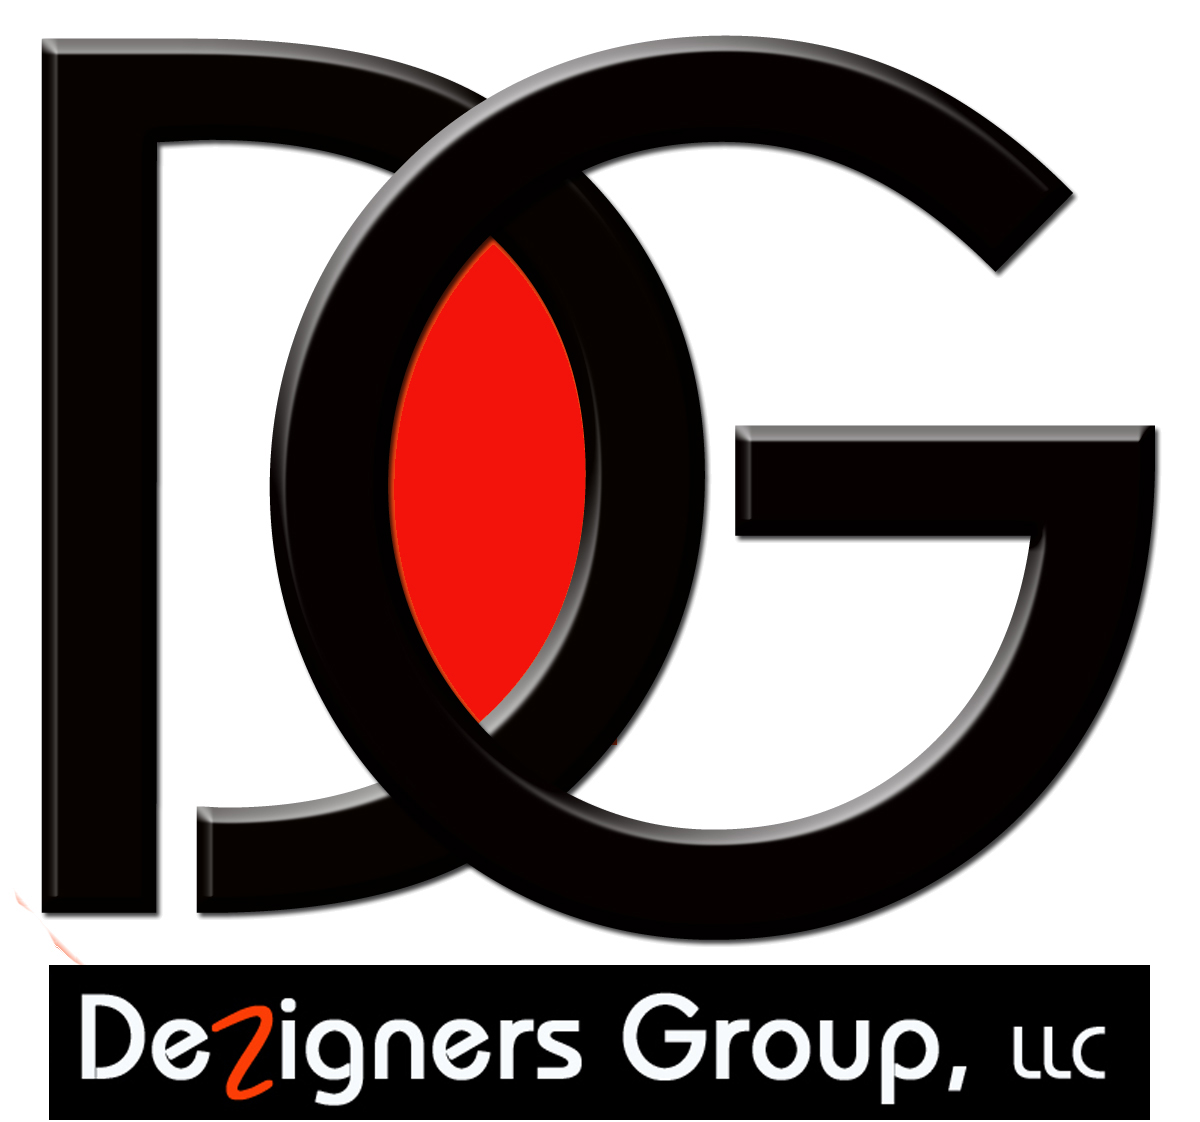 Dezigners Group logo